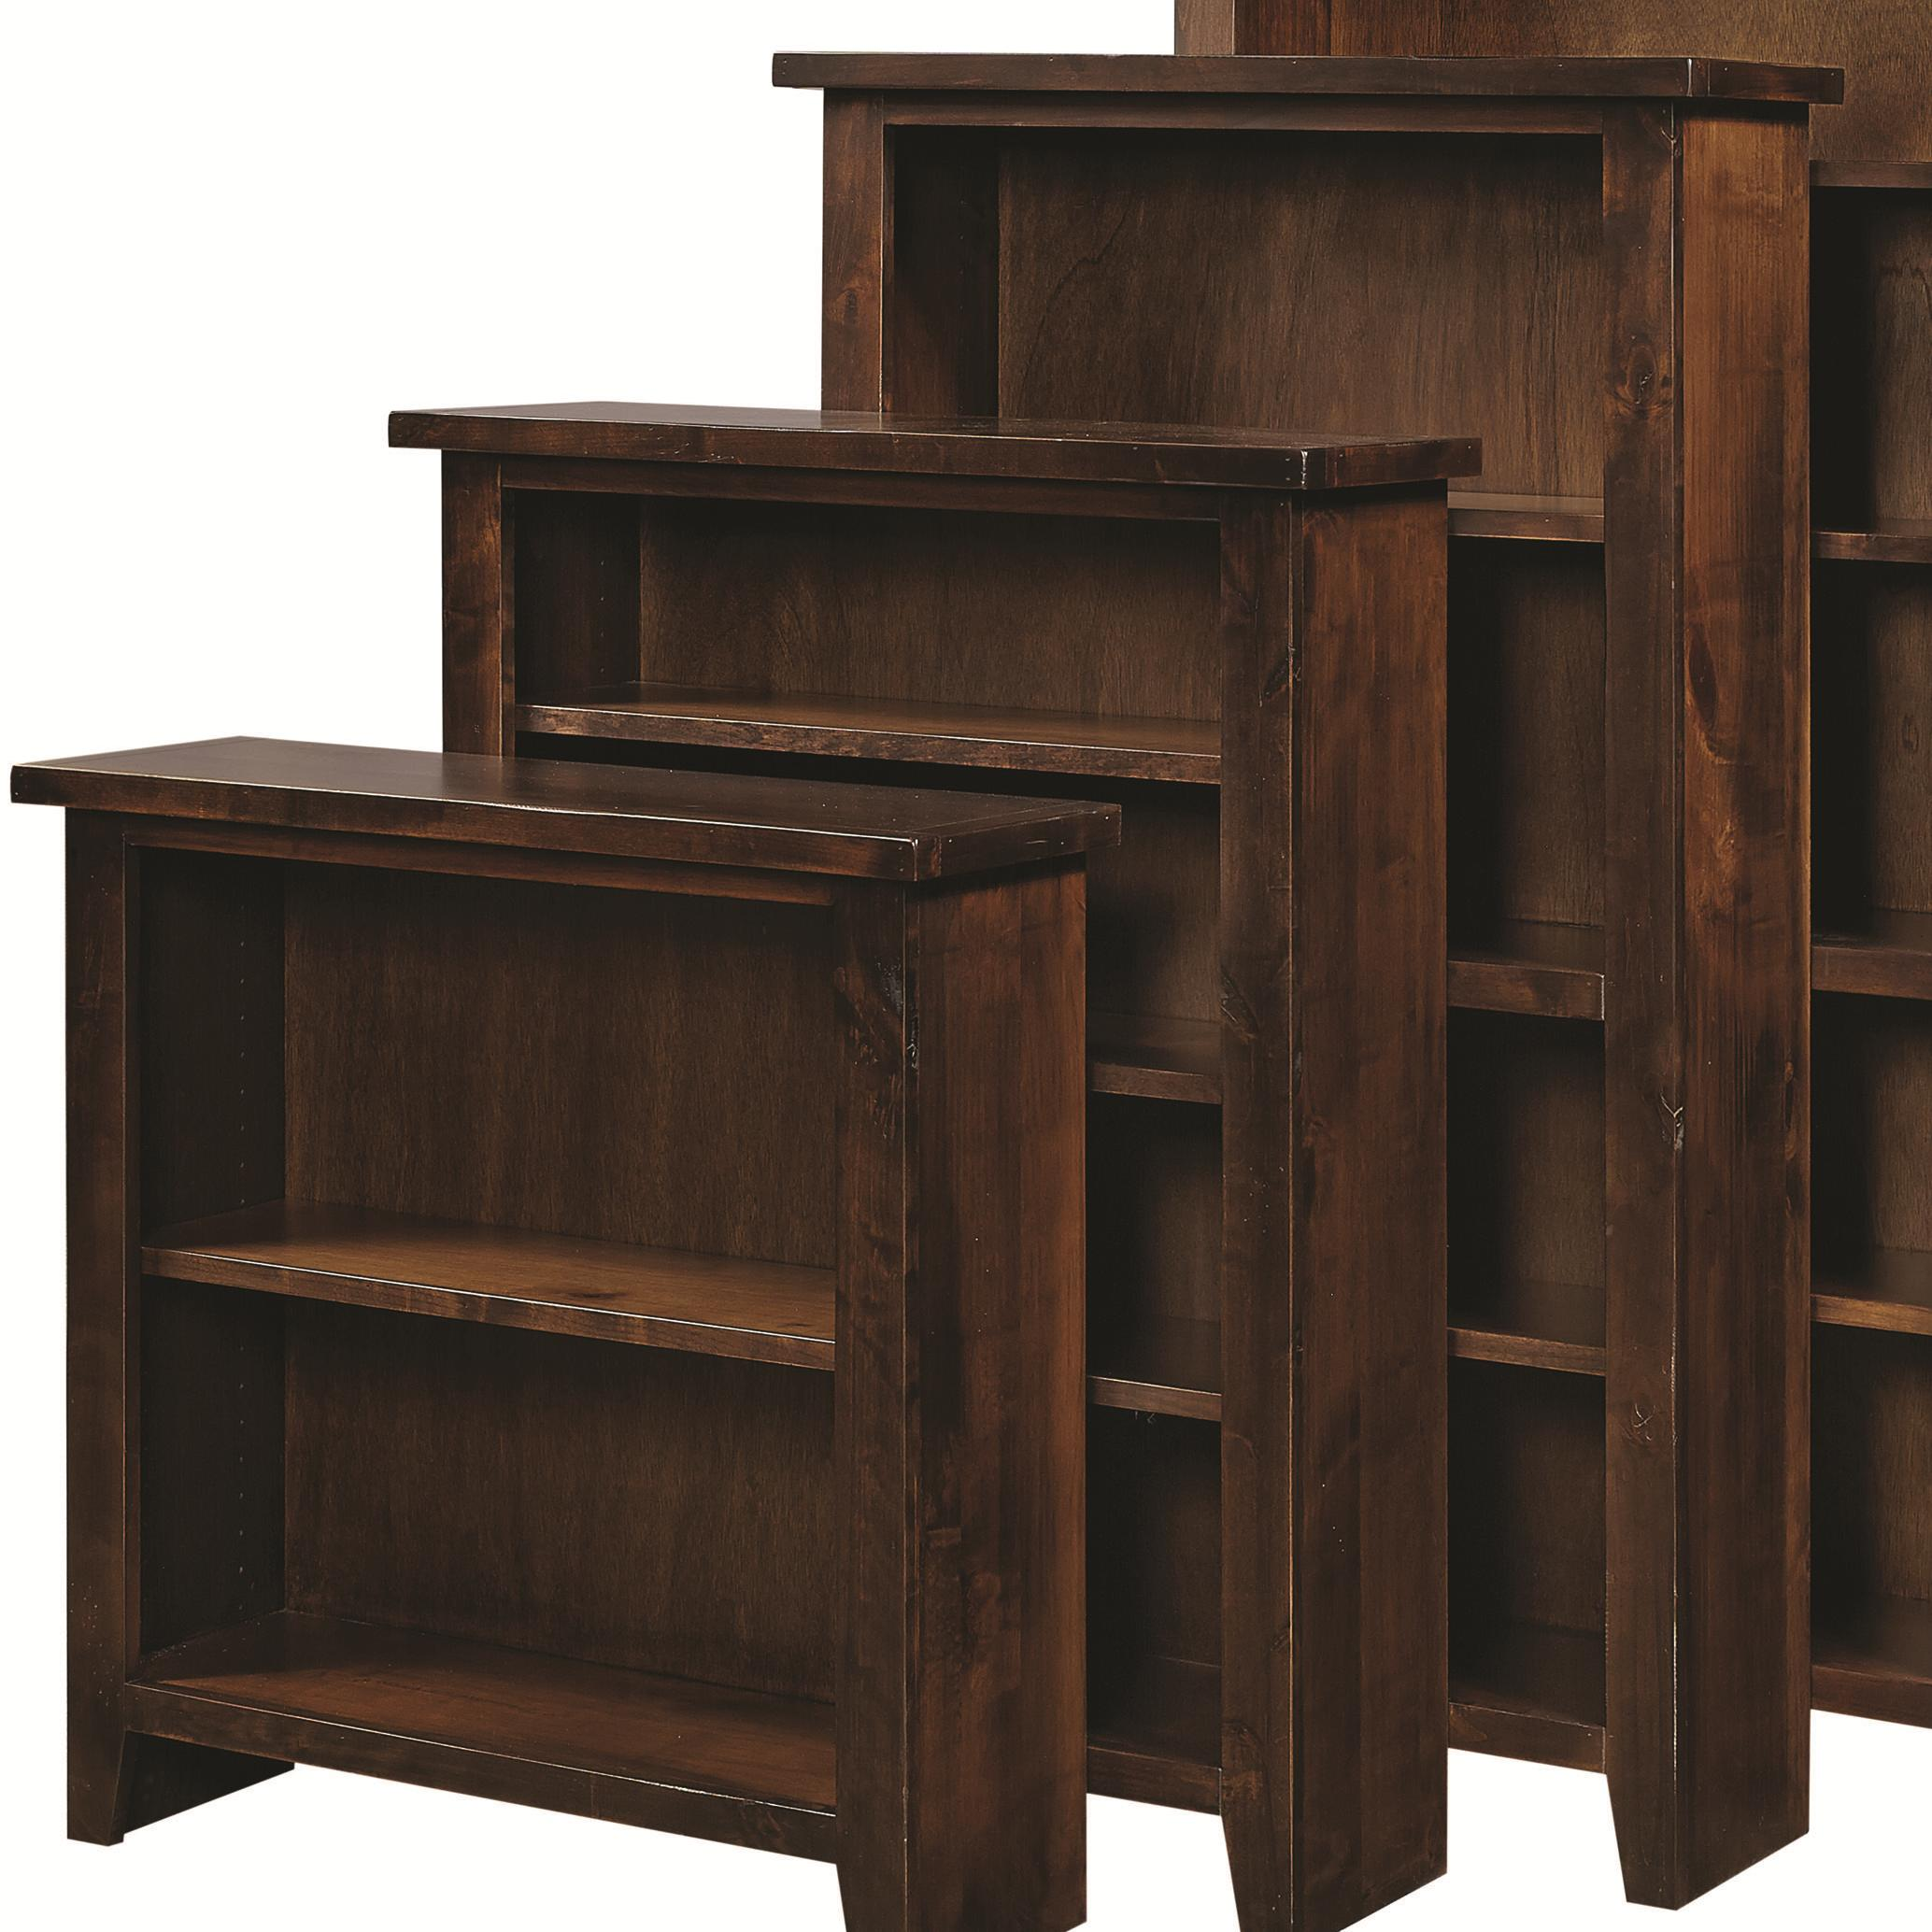 "Alder Grove Bookcase 60"" Height with 3 Shelves by Aspenhome at Walker's Furniture"